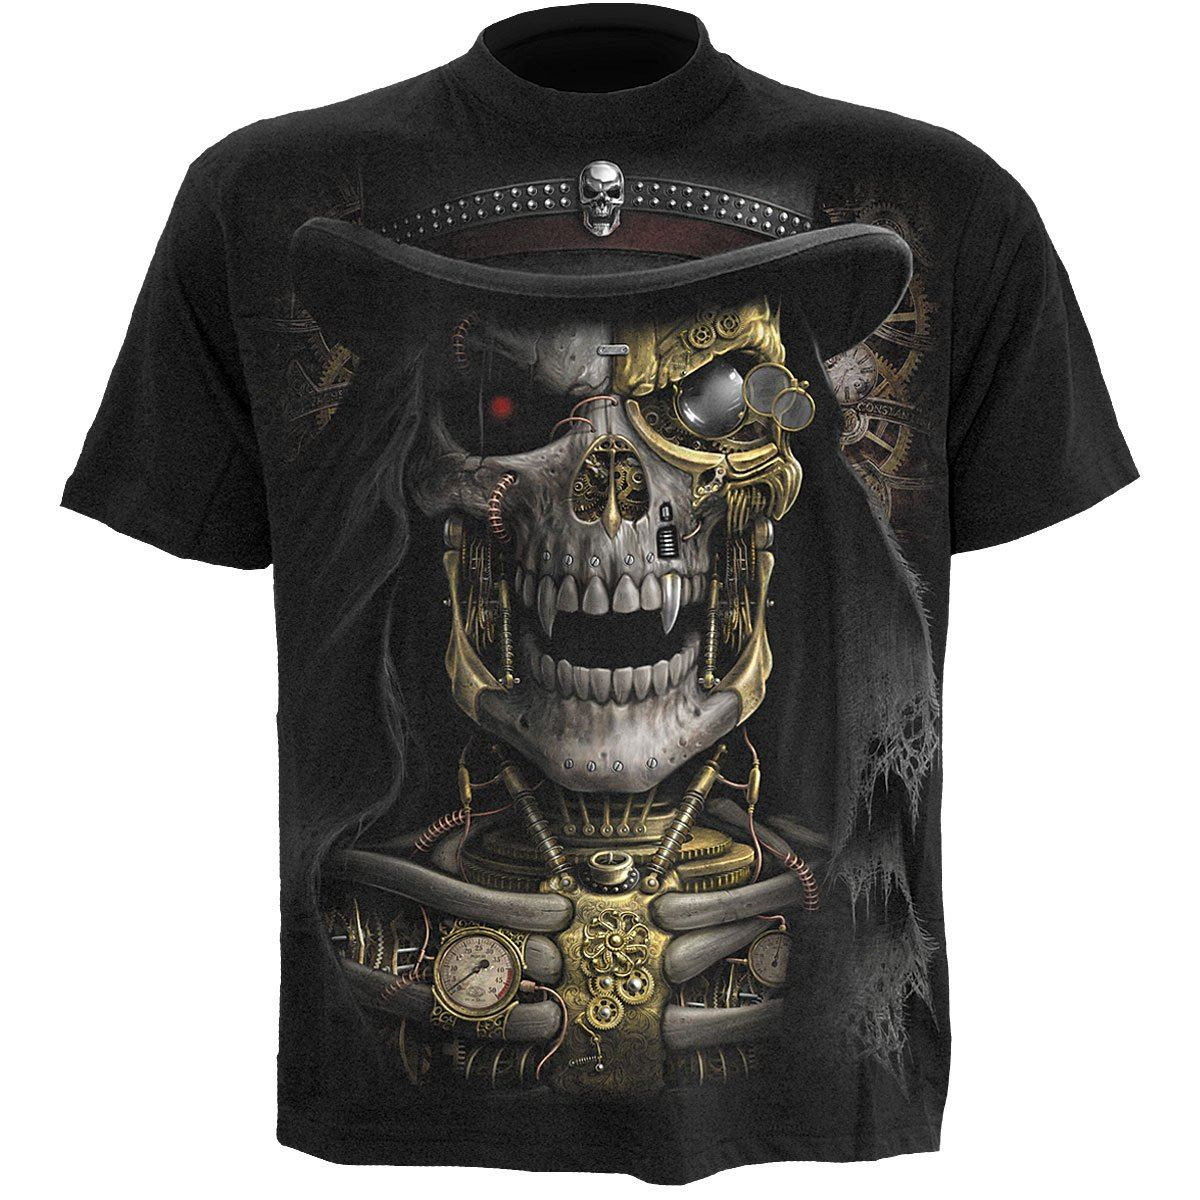 Steampunk Grim Reaper Men's Black T-Shirt